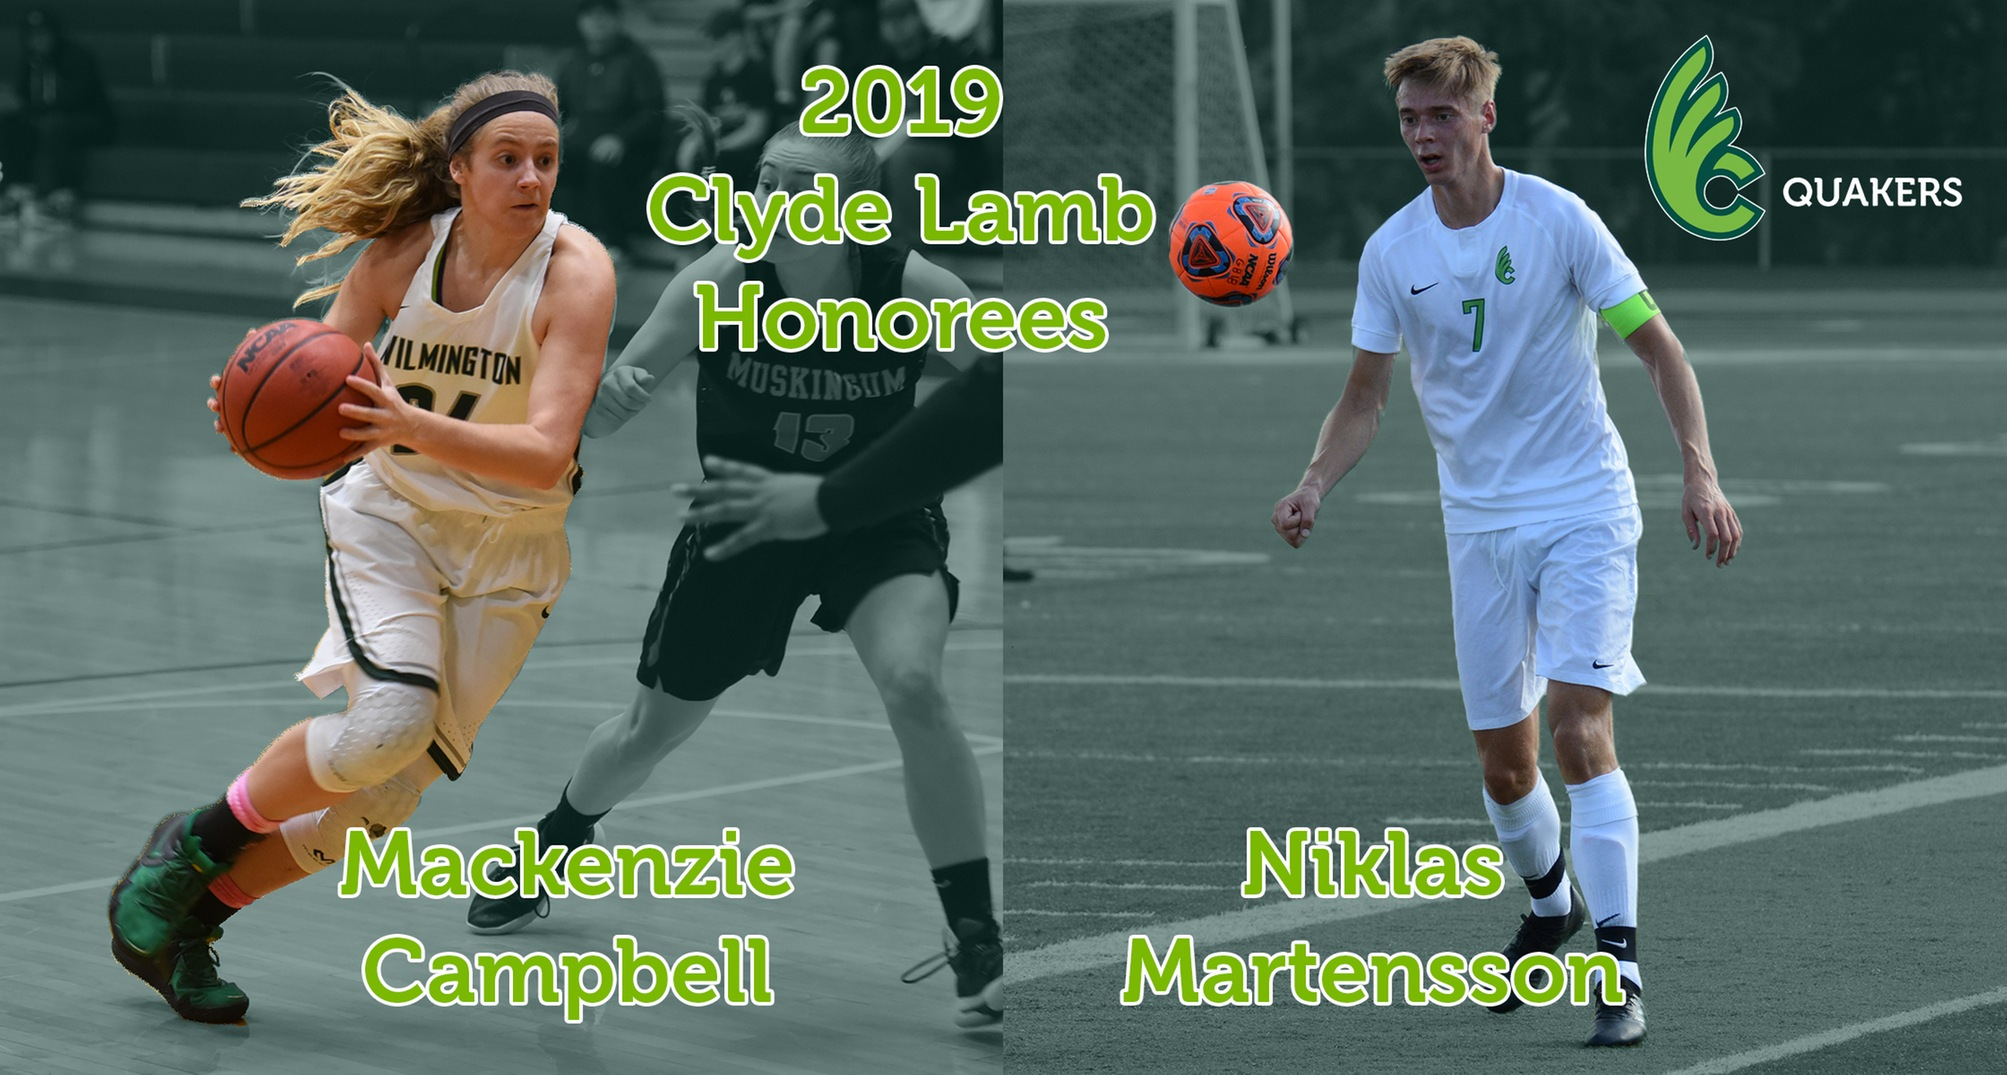 Campbell and Martensson To Receive Clyde Lamb Awards on May 13